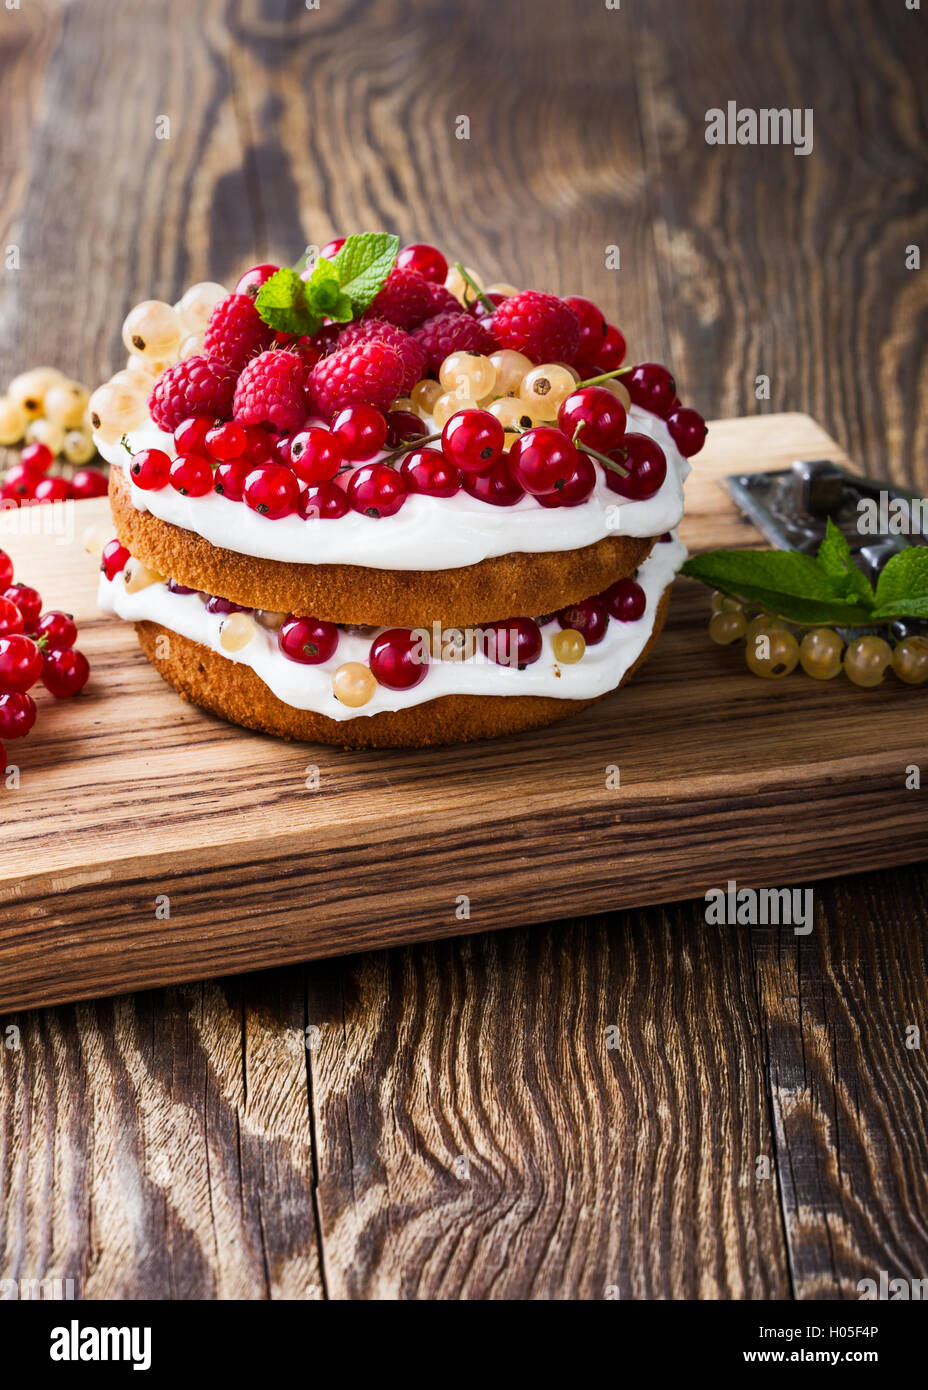 Homemade butter layer cake with whipped cream topping on rustic wooden table - Stock Image